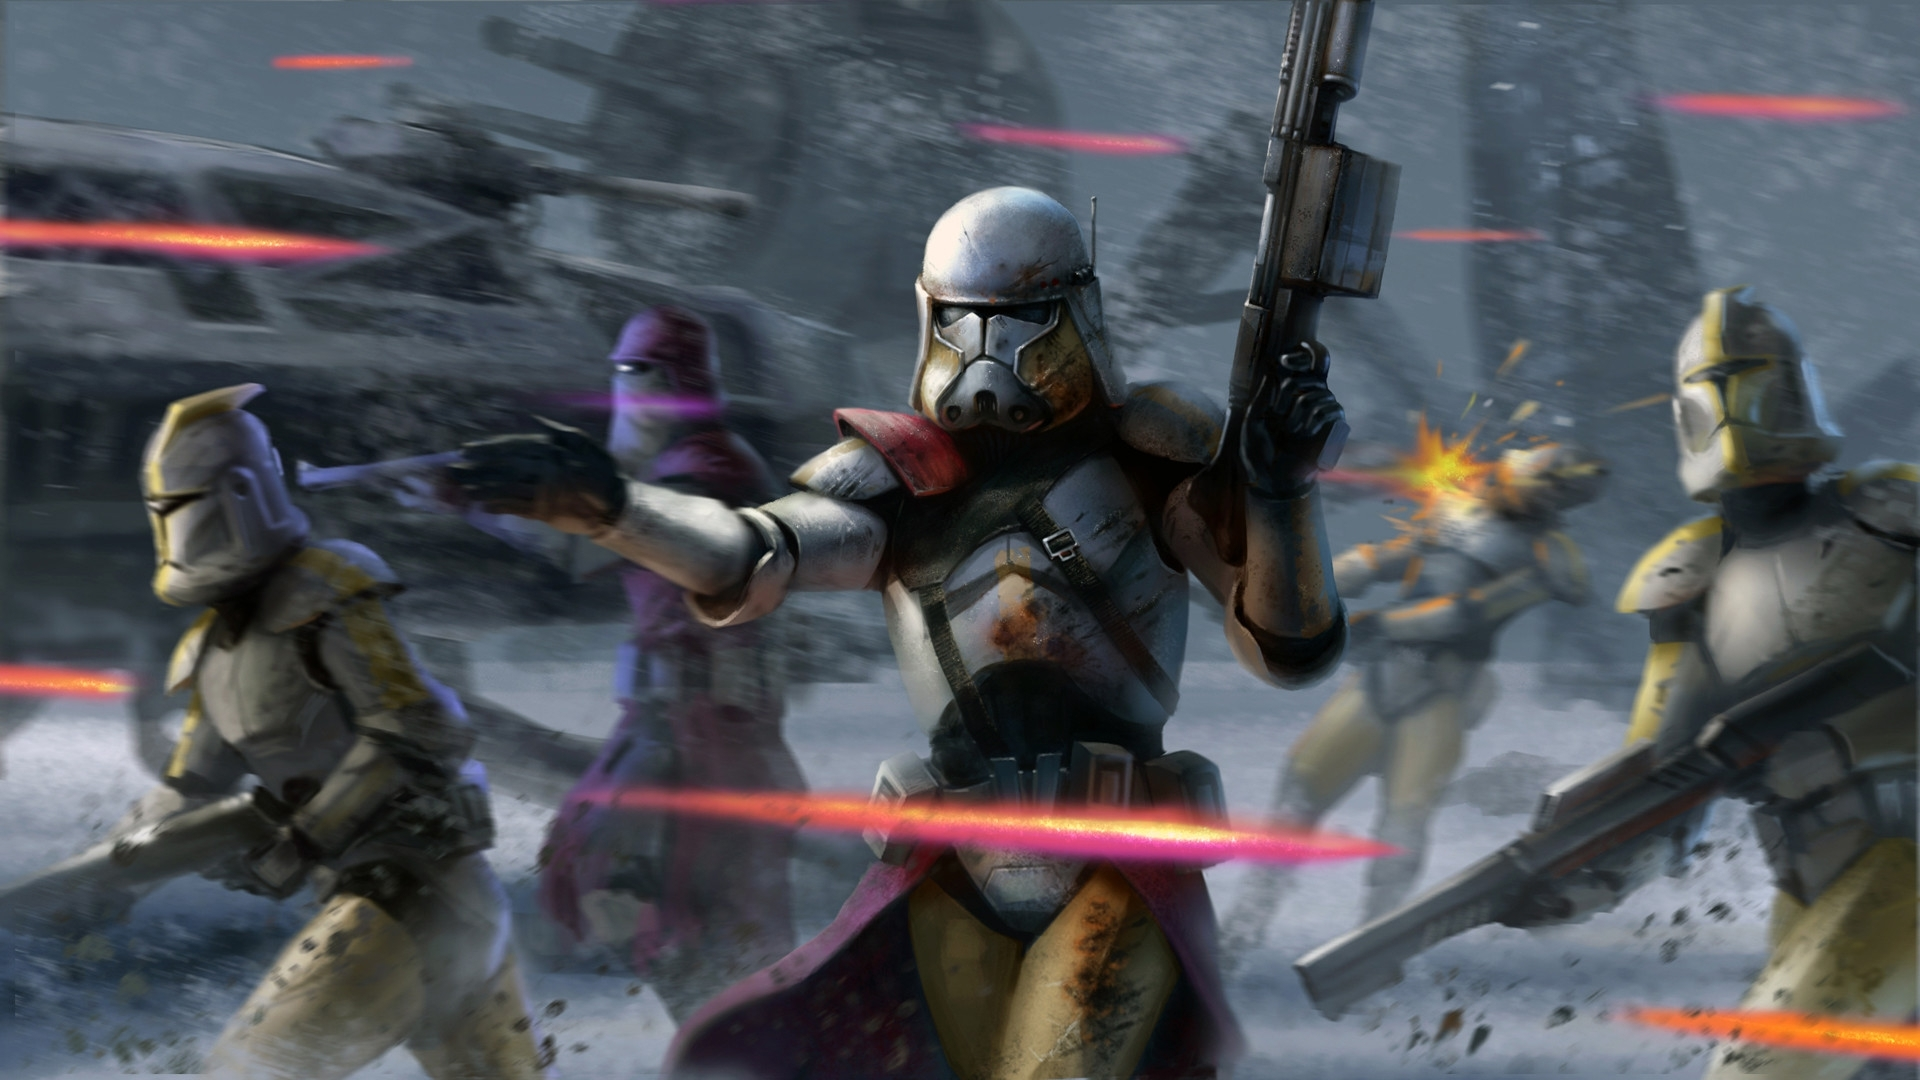 clone wars wallpaper star the for mobile hd pics ~ gipsypixel